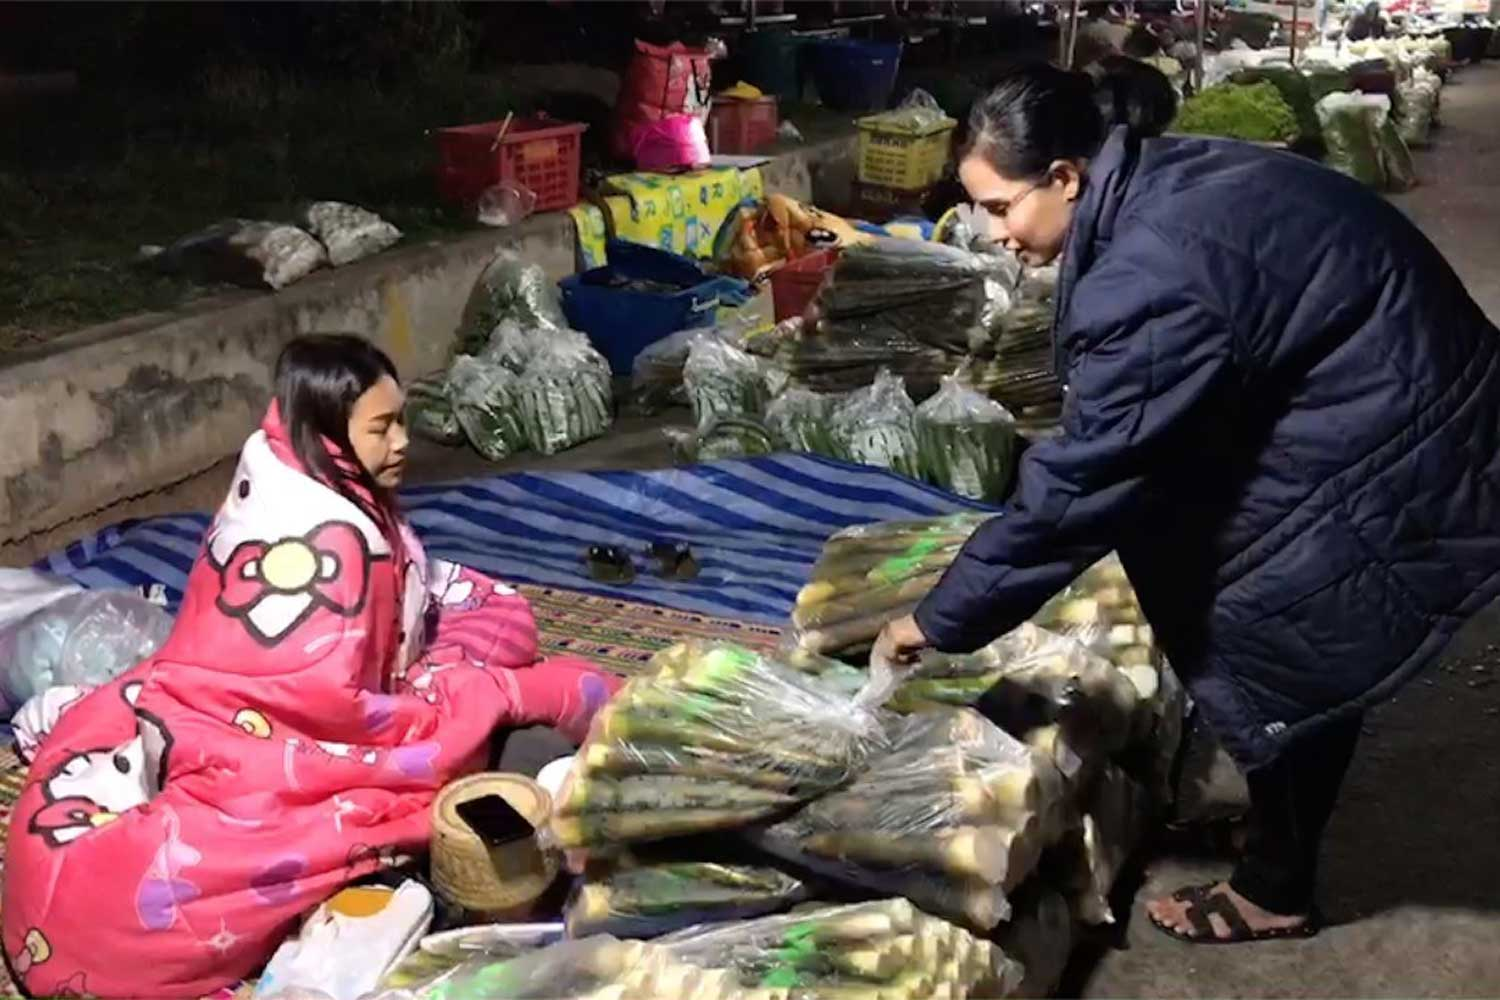 This vegetable vendor and her customer were well wrapped up against the cold at a market in Muang district of Kalasin province early on Tuesday. (Photo by Yongyuth Phuphuangpet)